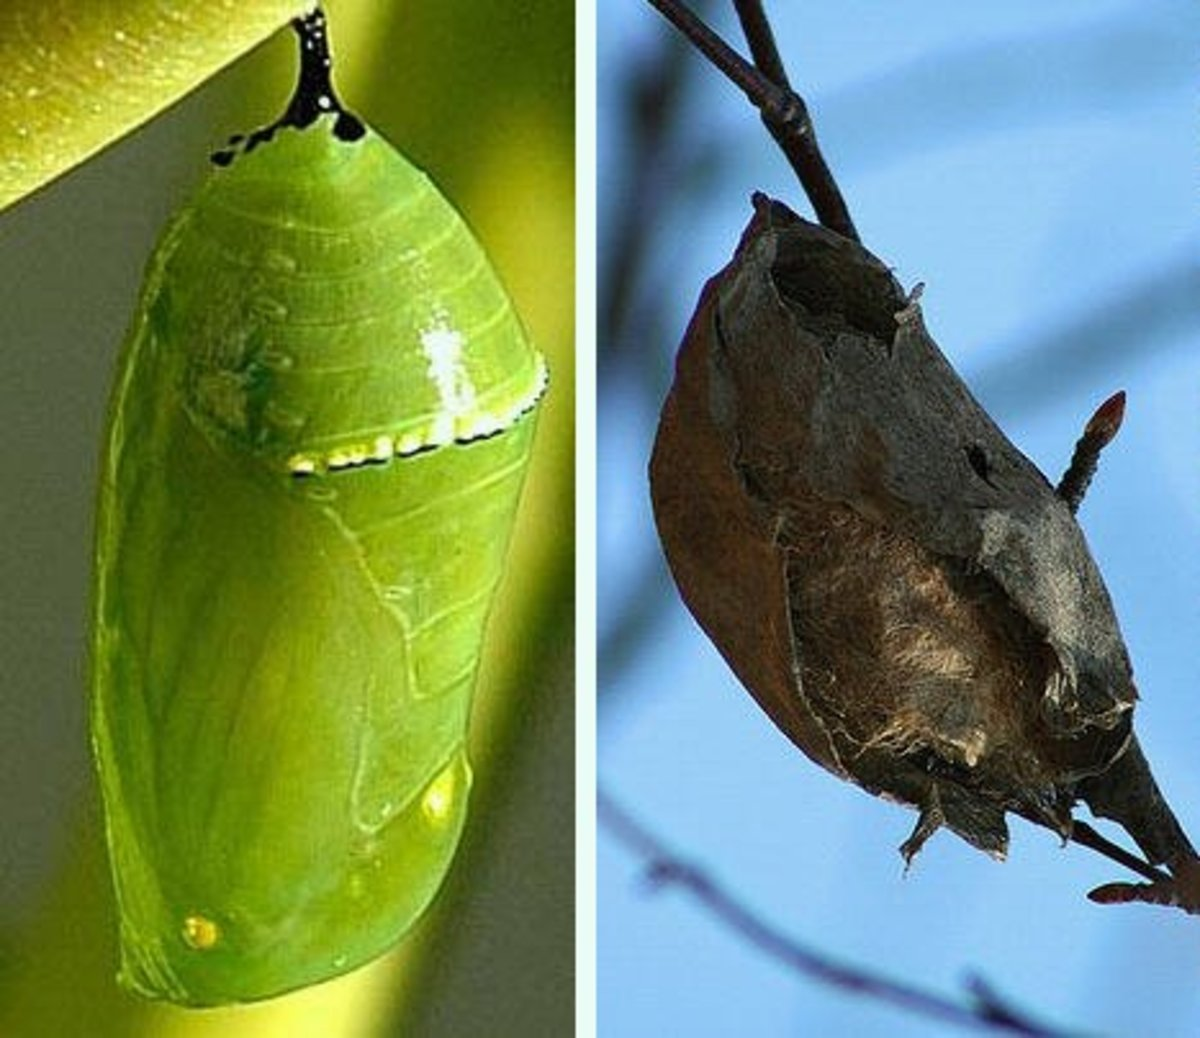 A butterfly chrysalis on the left and a moth cocoon on the right.